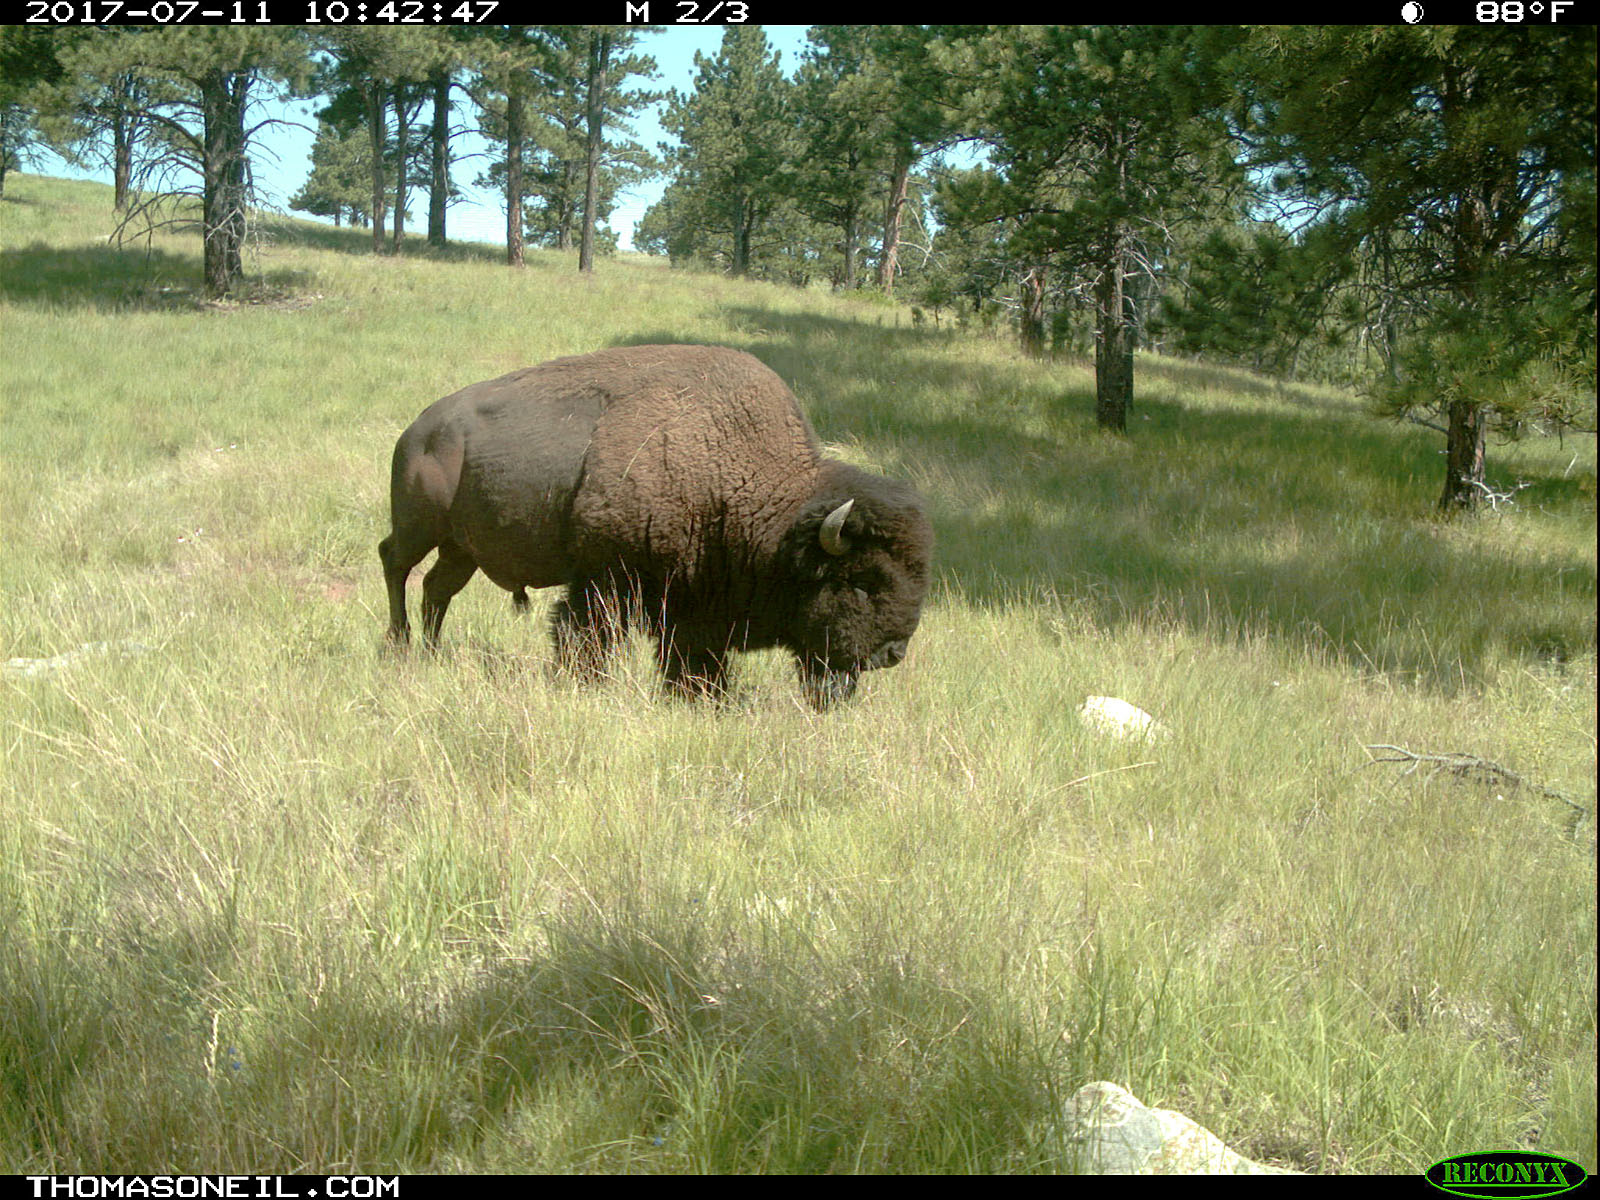 Bison staking out a grazing spot, July 11, 2017.  Click for next photo.